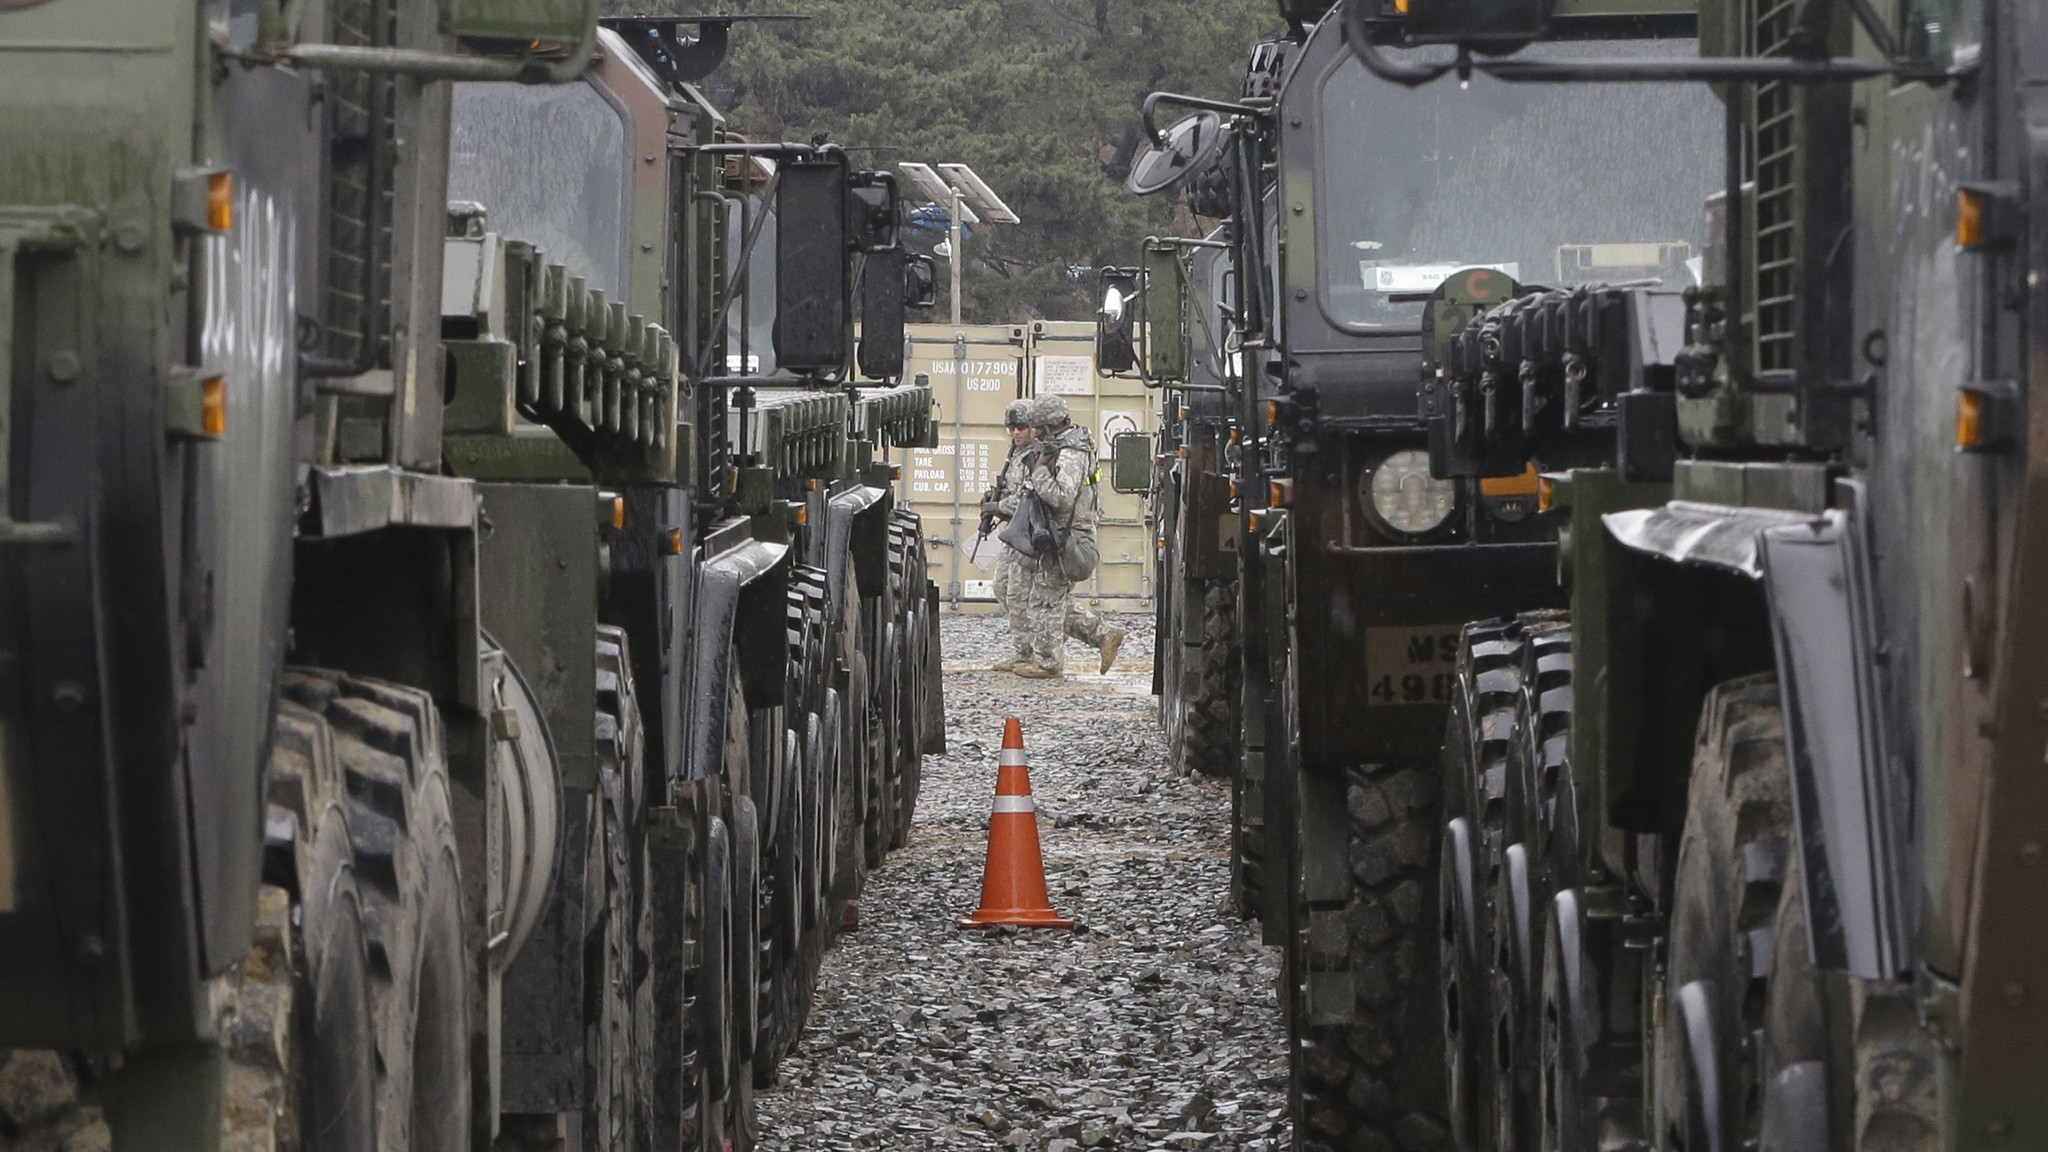 A U.S.-South Korea joint military exercise in Pohang, South Korea. (Ahn Young-joon / Associated Press)